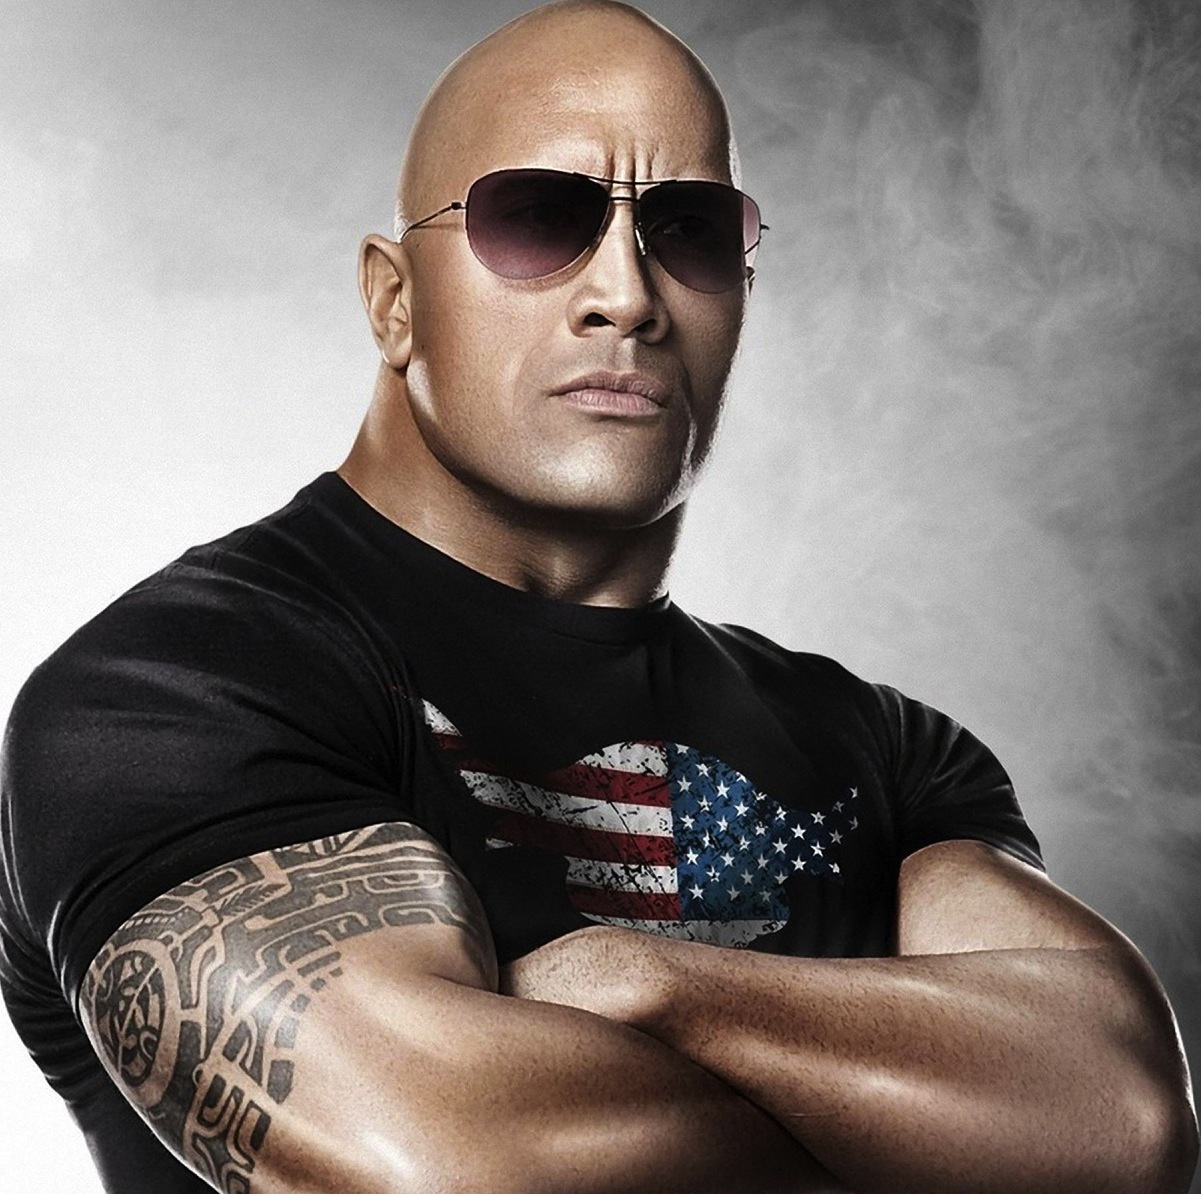 The Rock wwe champion hd wallpapersjpg 1201x1194